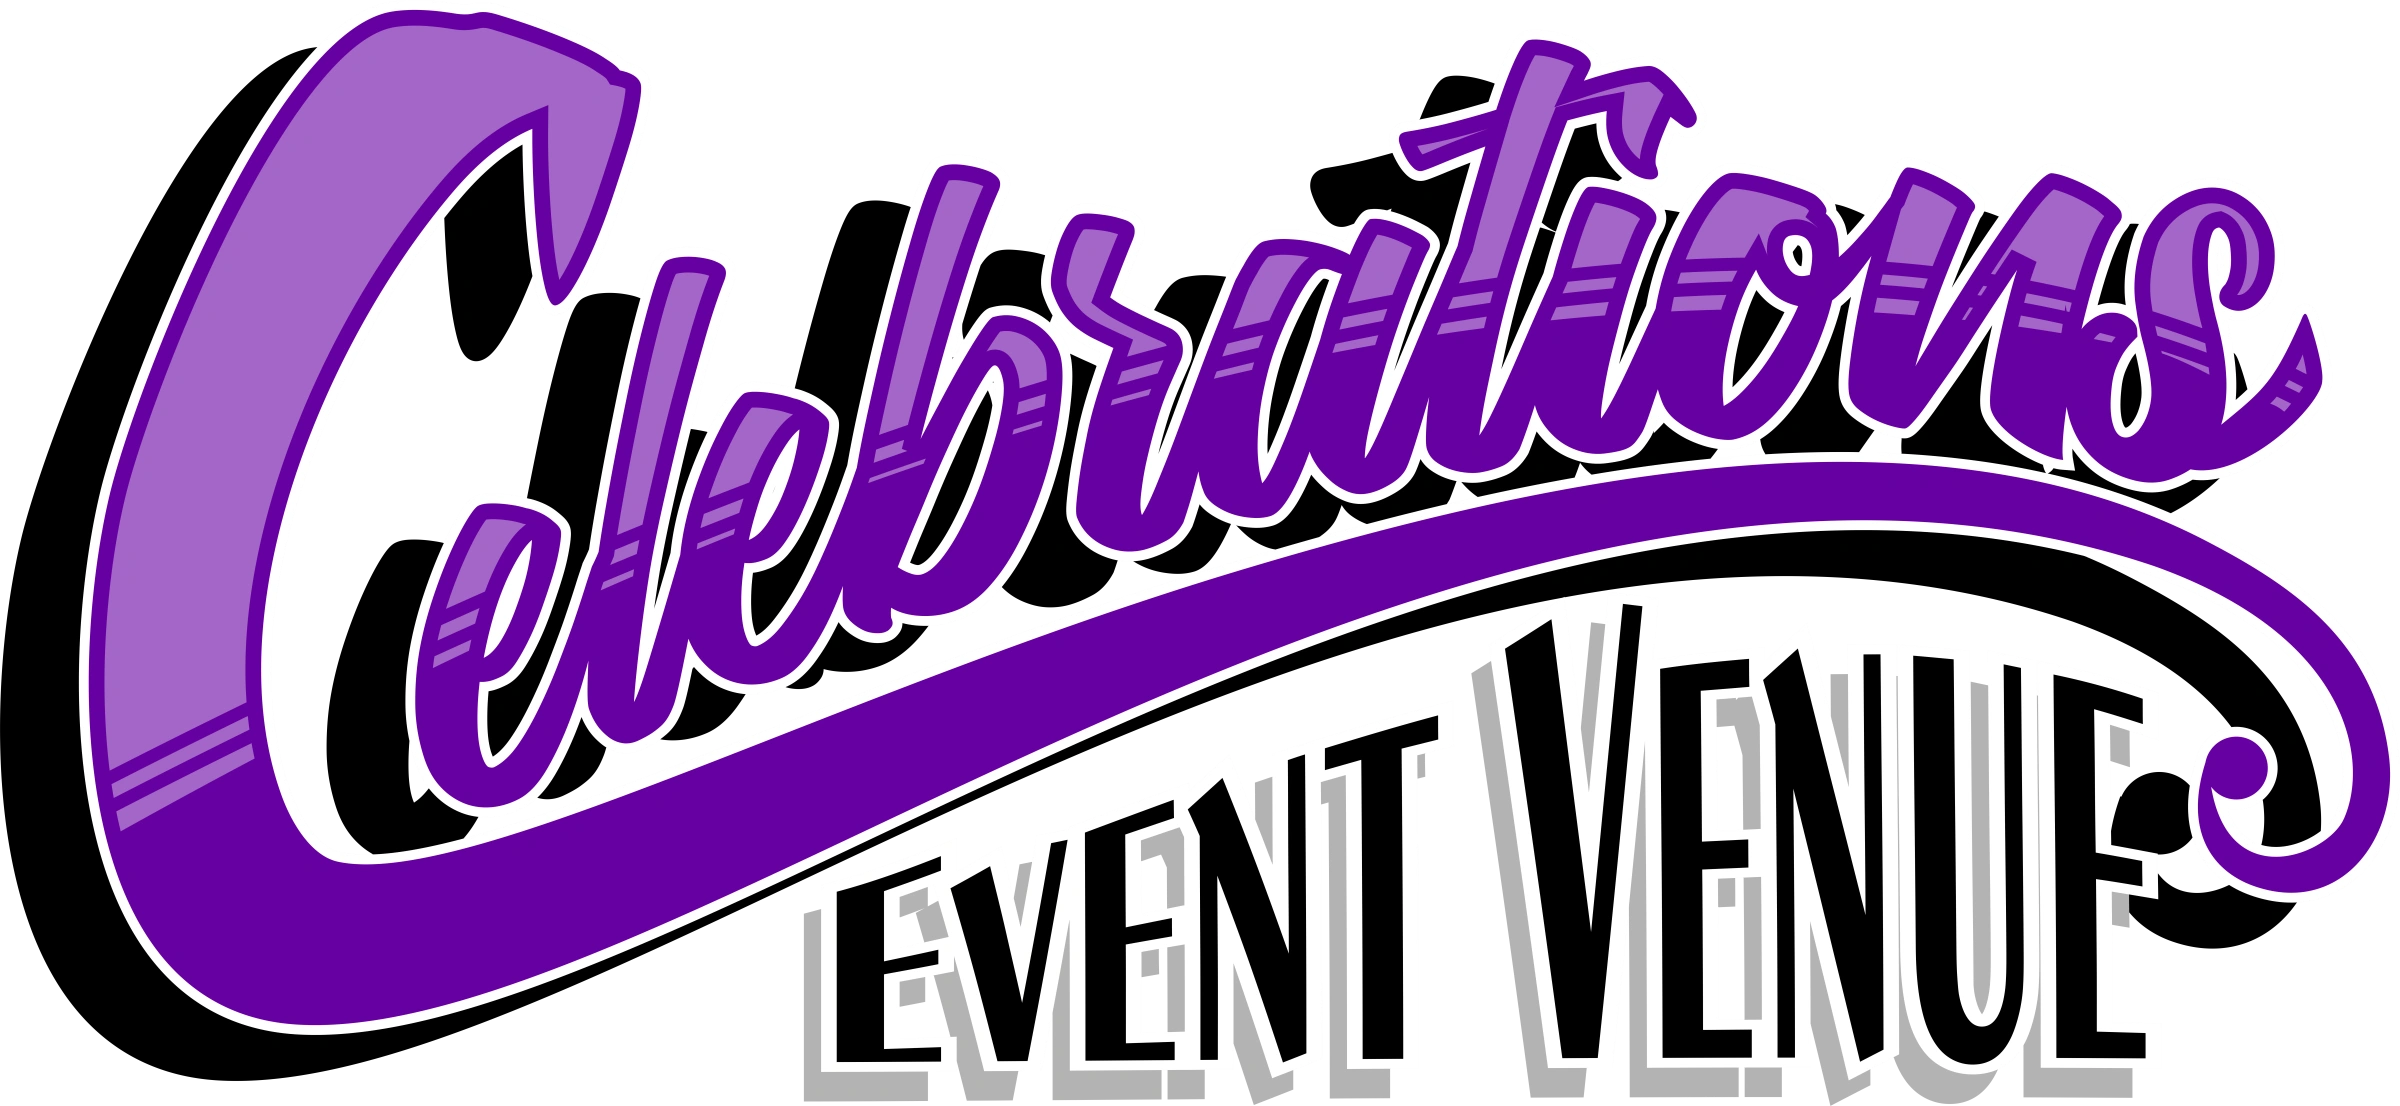 Custom logo image made for Celebrations Event Venue.